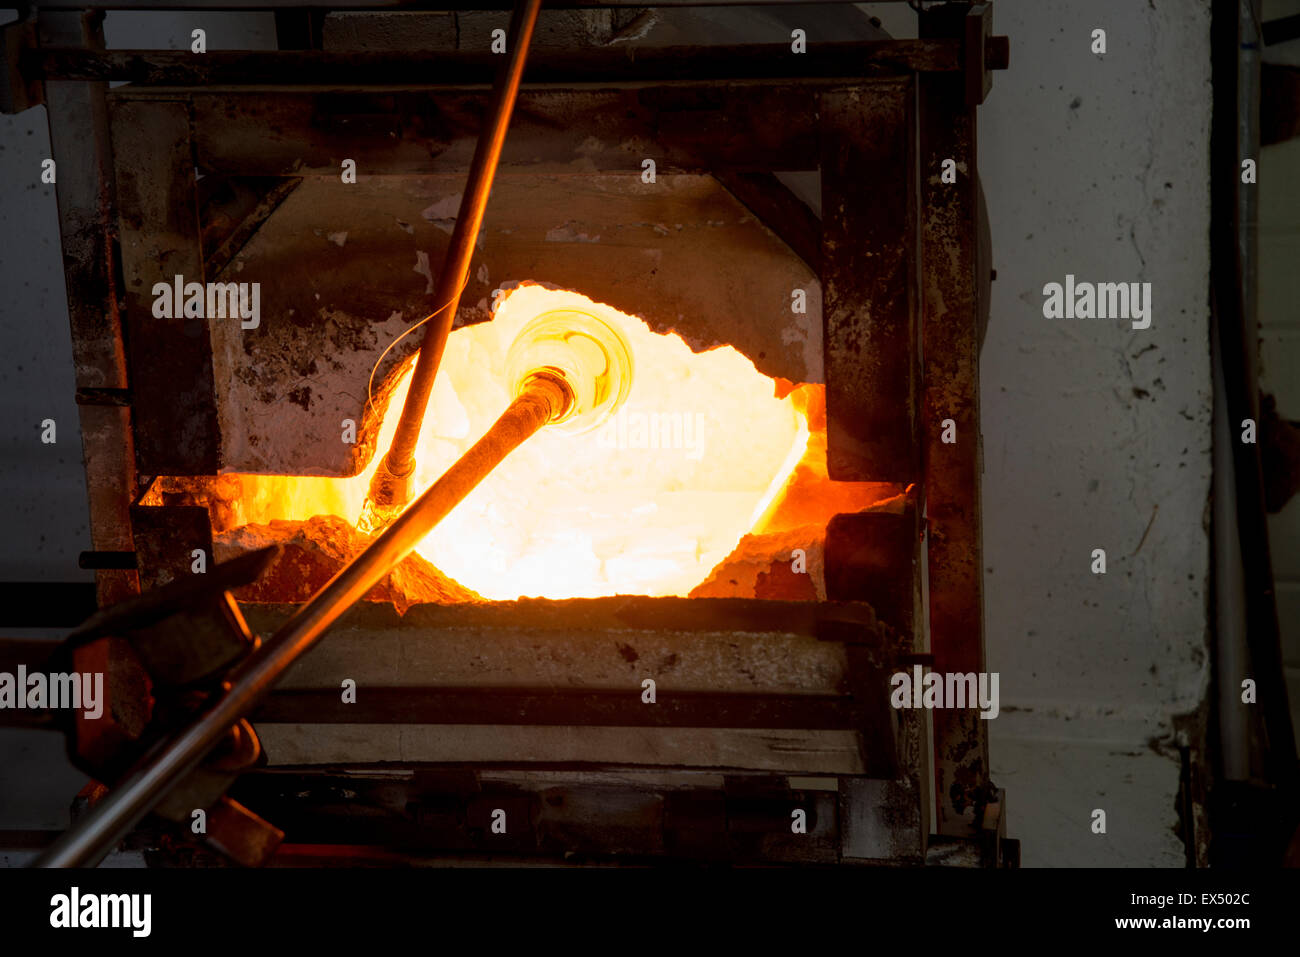 Glassmaker's workshop the glass is in the oven to melt before forming - Stock Image